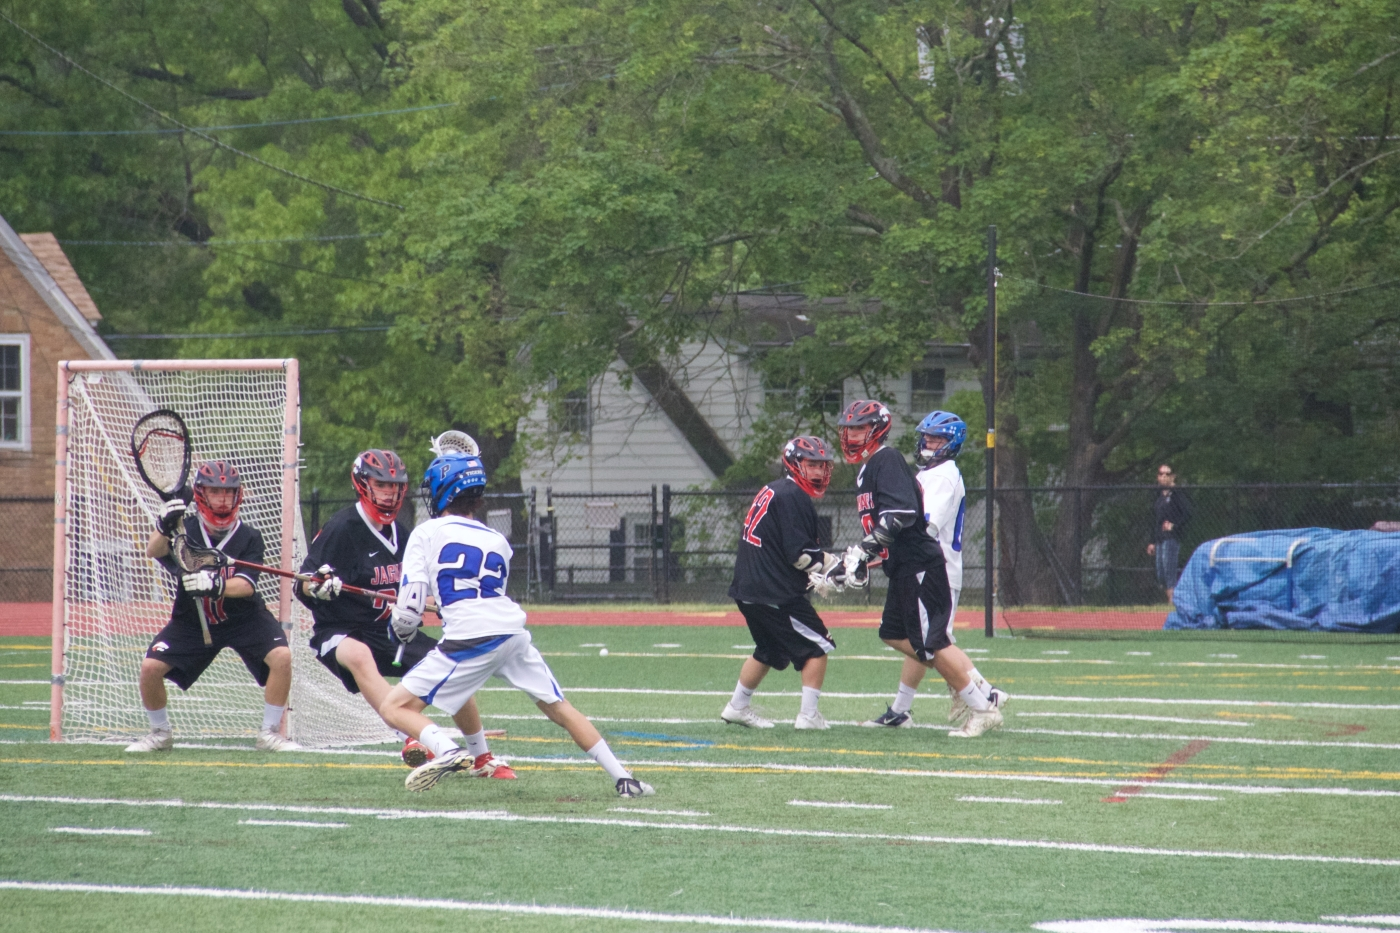 Johnny Lopez-Ona '17 (#22) sets an offensive play against Jackson Memorial High School on May 16. The Little Tigers won 14–0. Photos: Caroline Smith